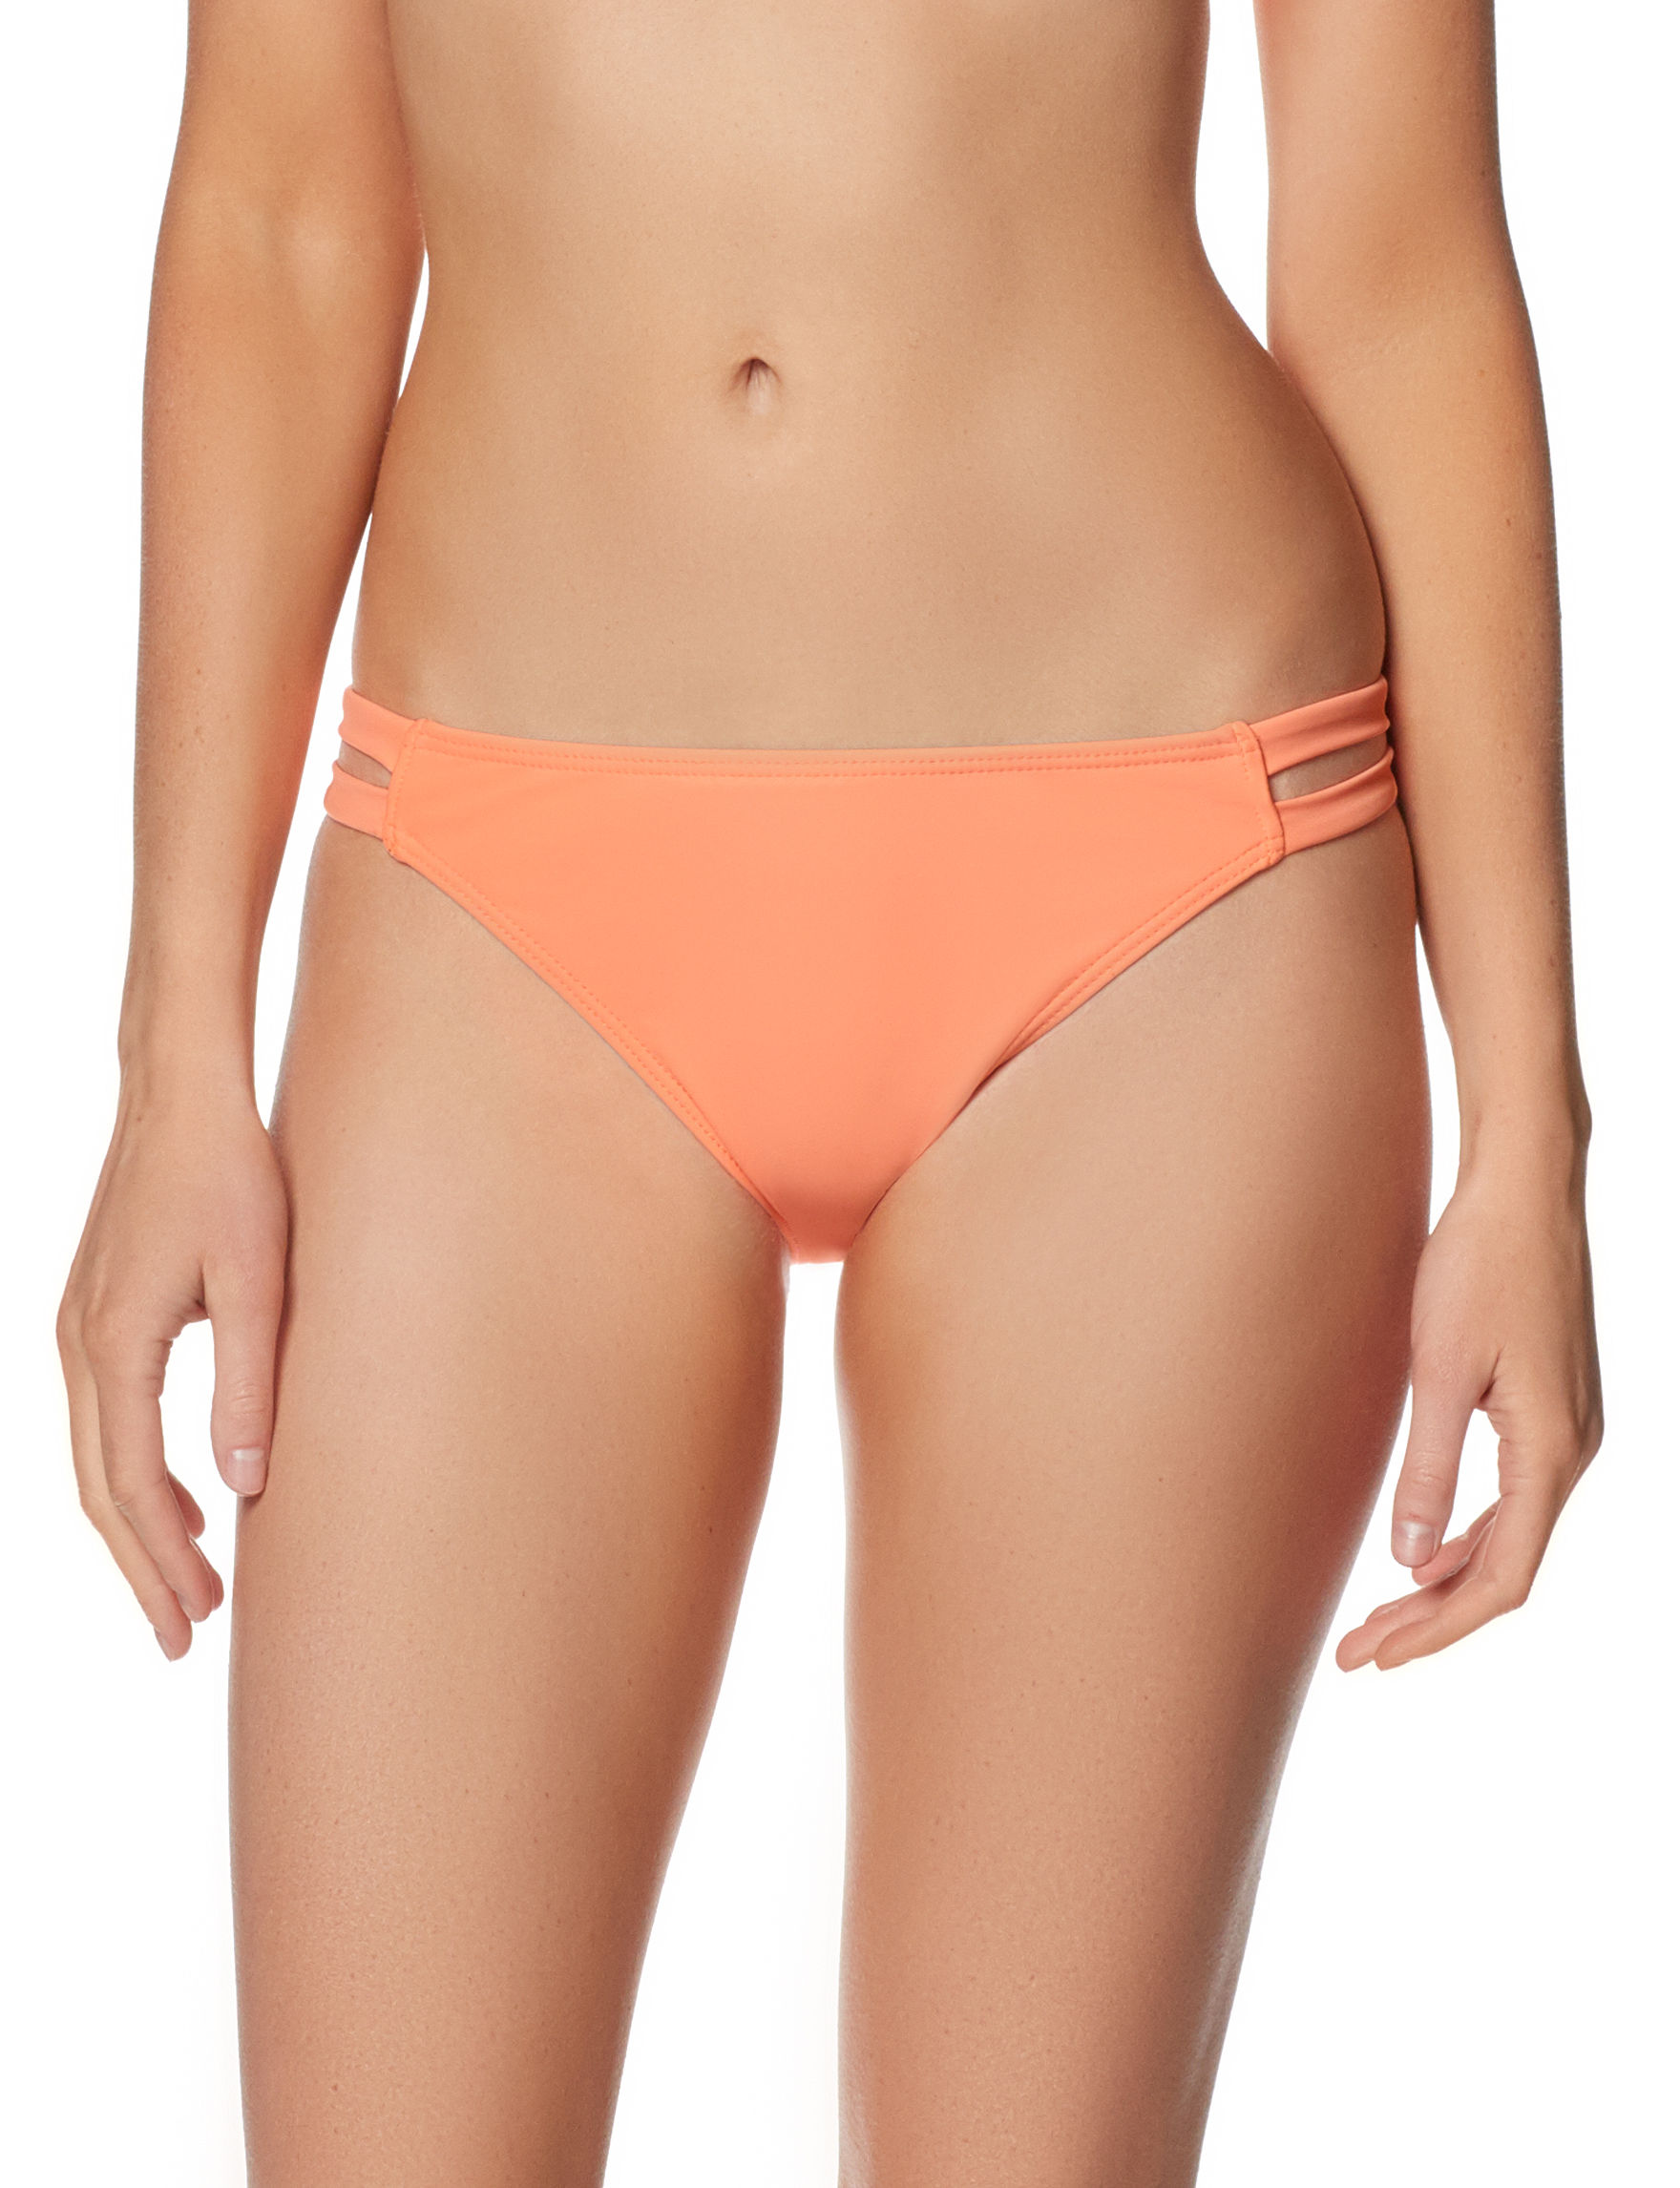 In Mocean Medium Orange Swimsuit Bottoms Hipster